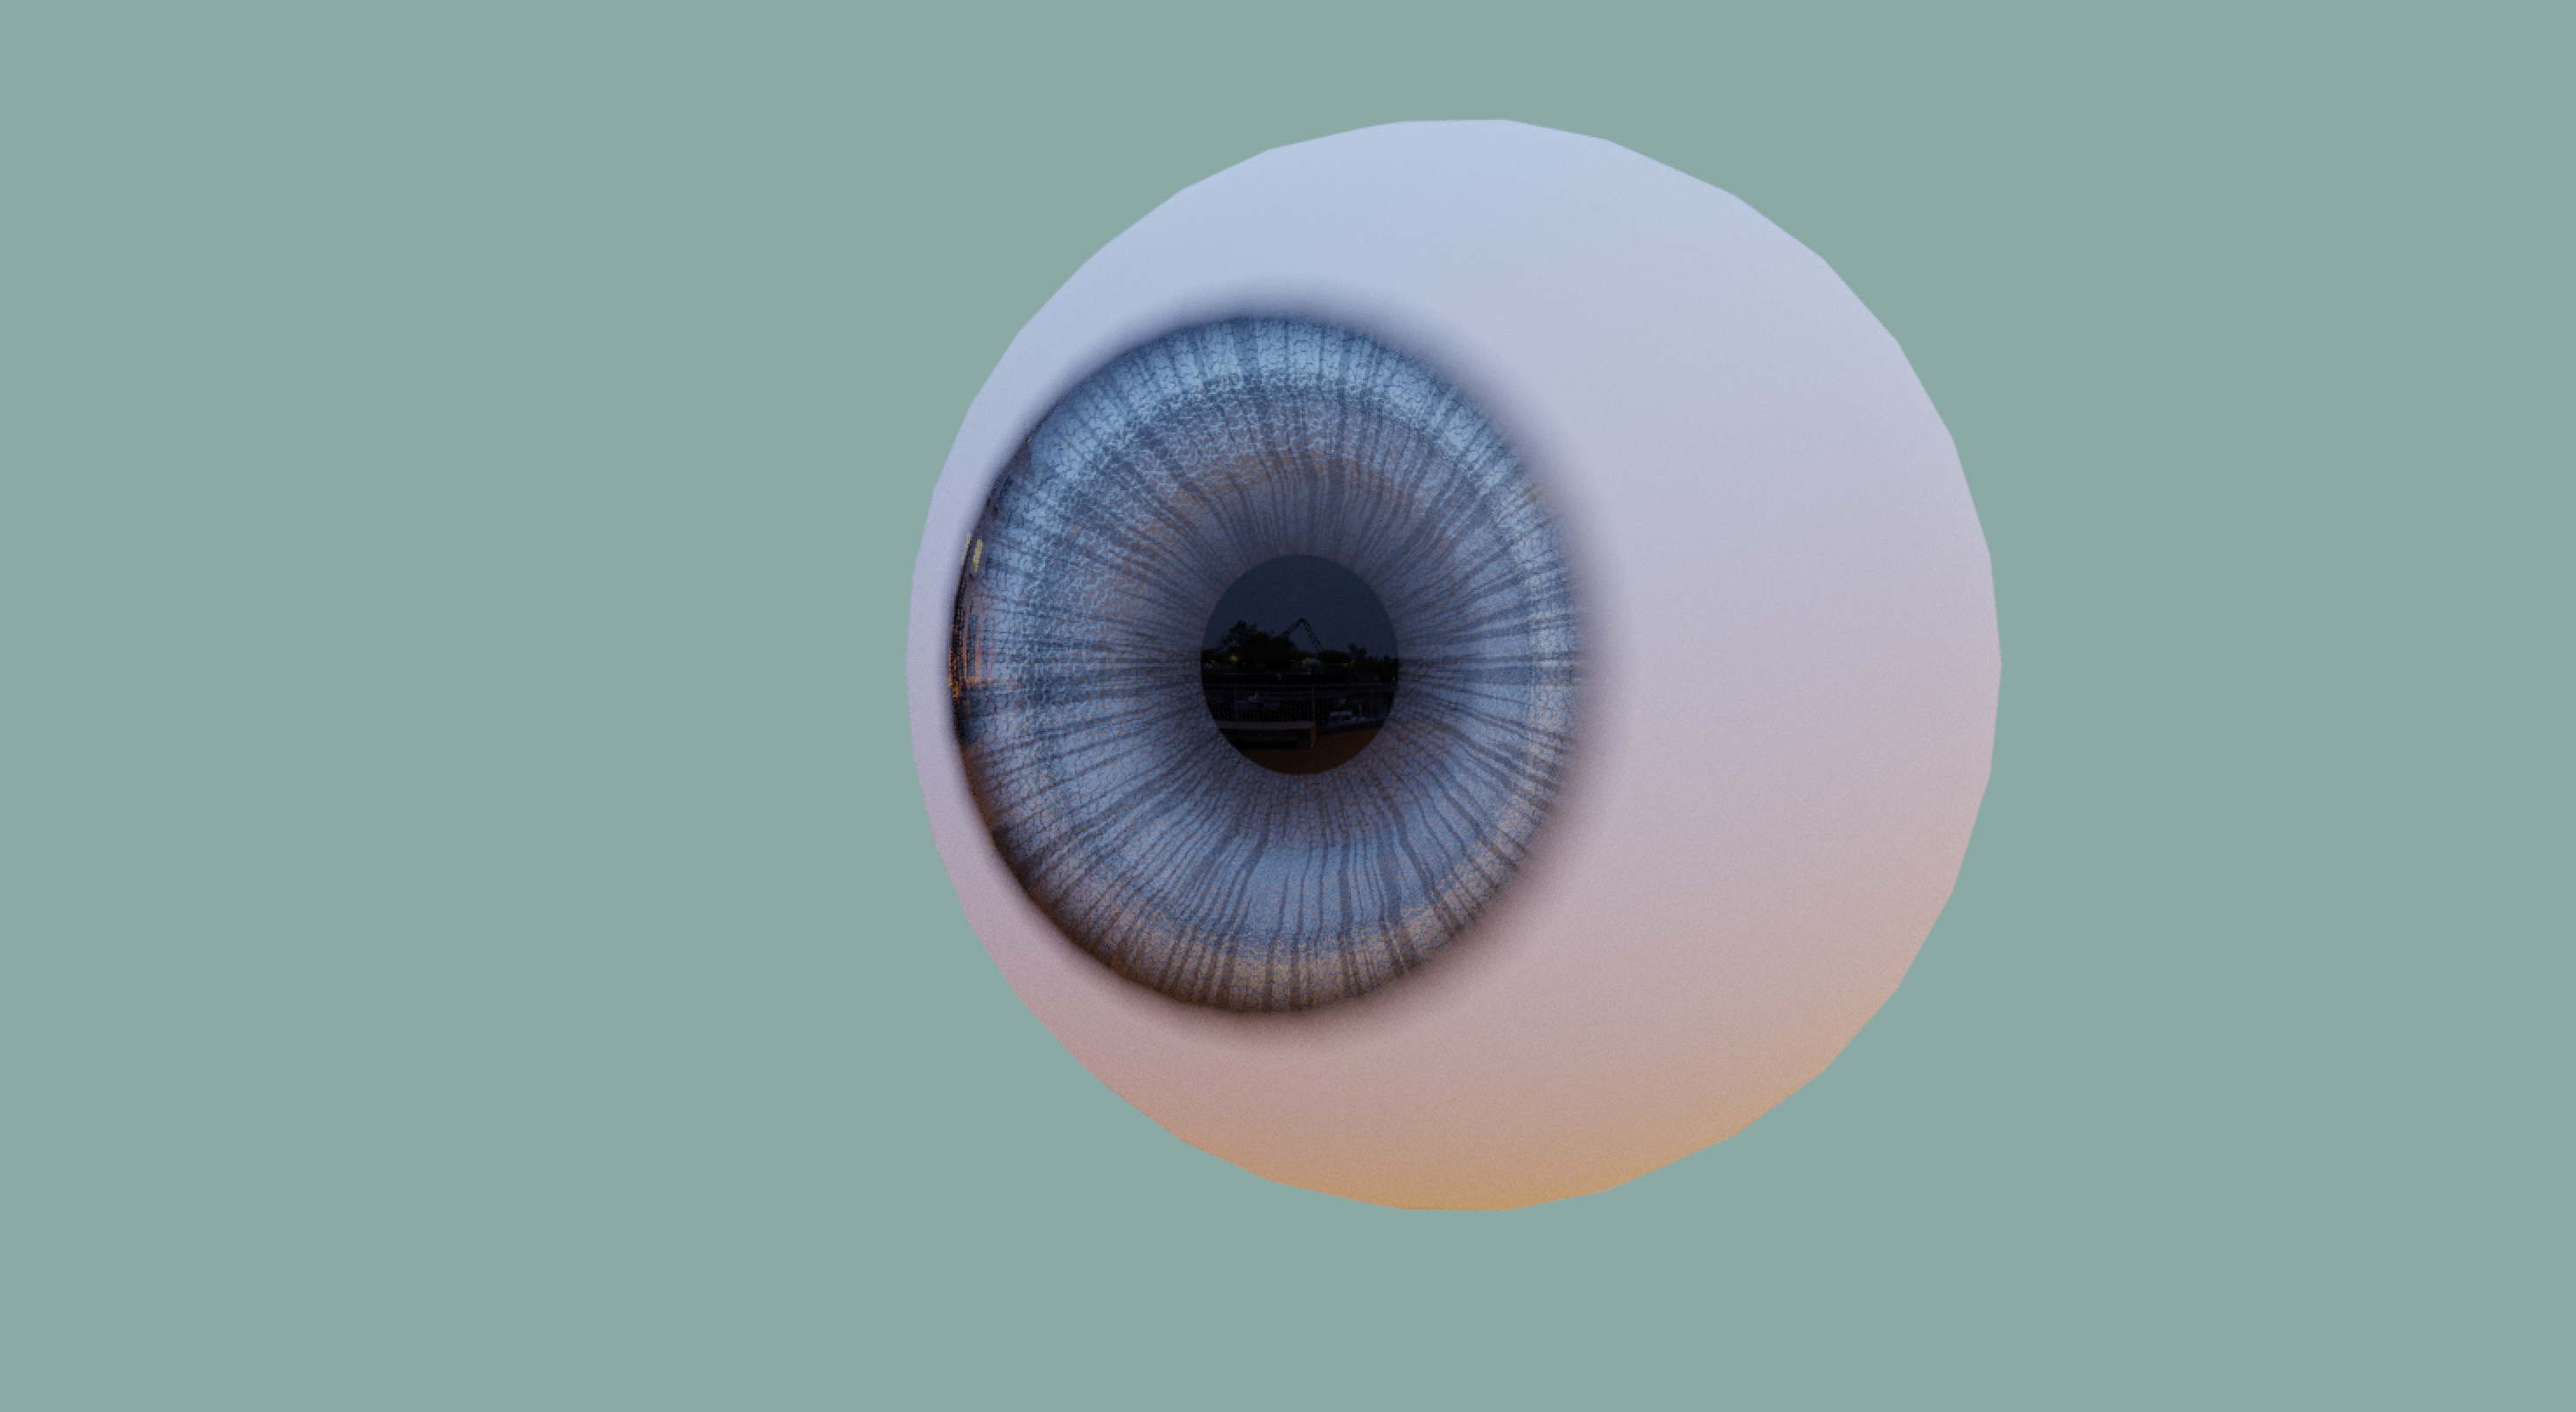 Cartoon // Real Eyes - Model and Materials preview image 4